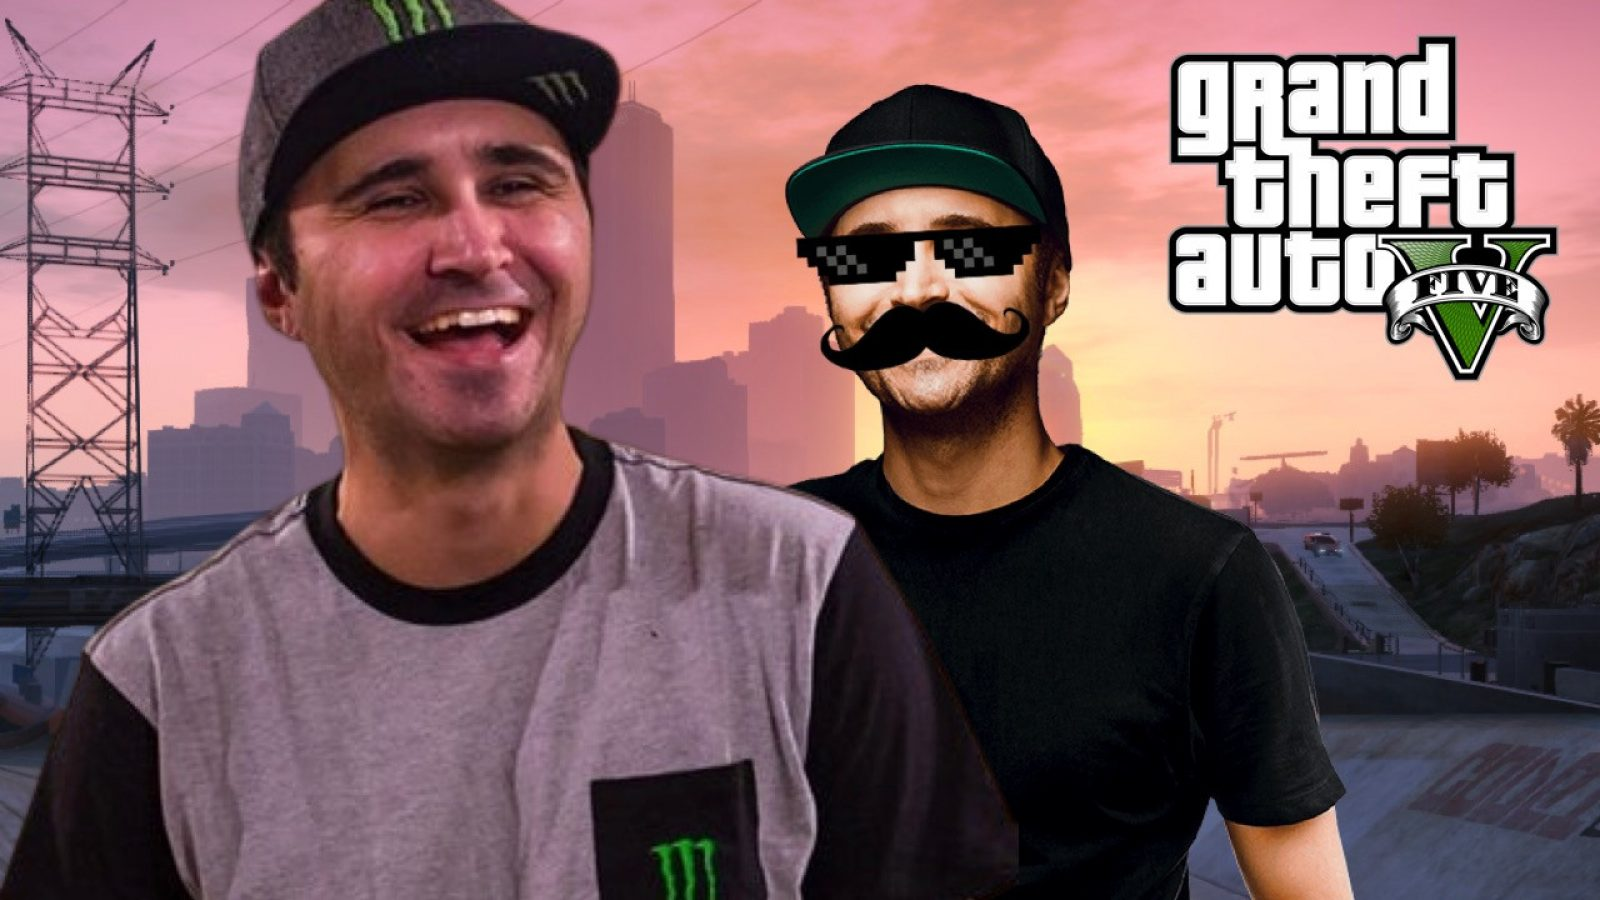 Summit1g in GTA